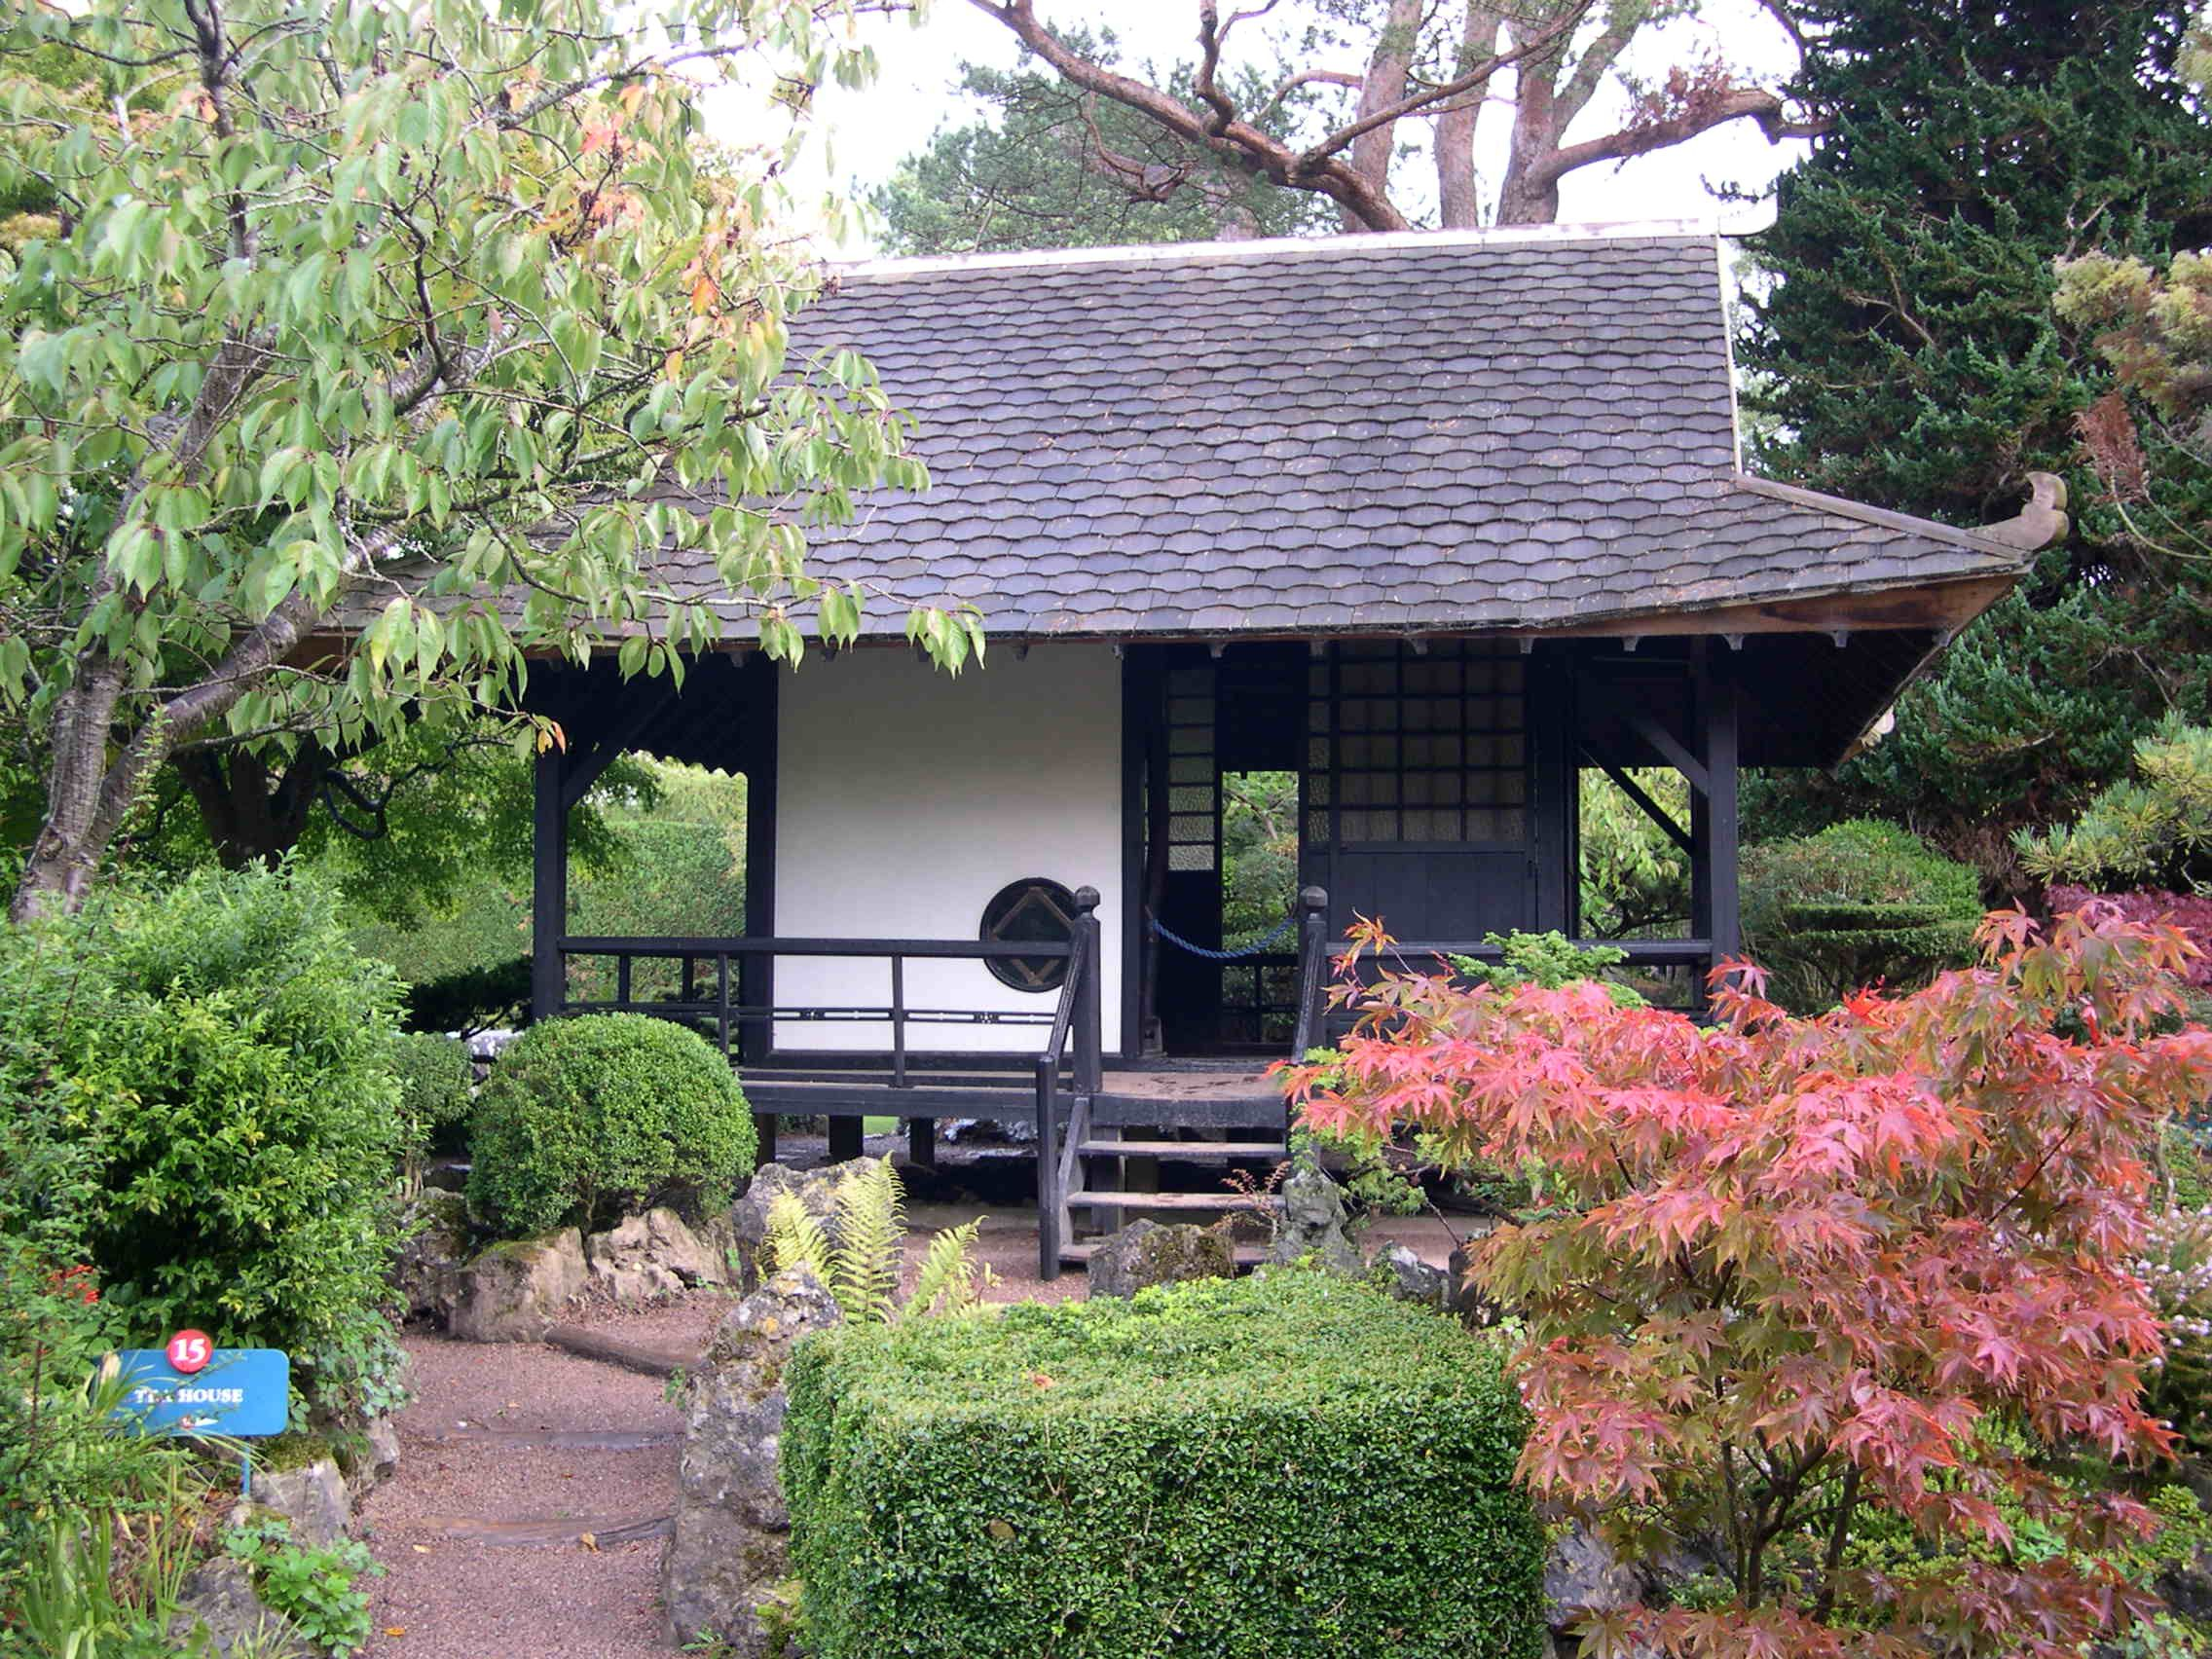 Tea House, Japanese Gardens, Tully, County Kildare, Republic Of Ireland